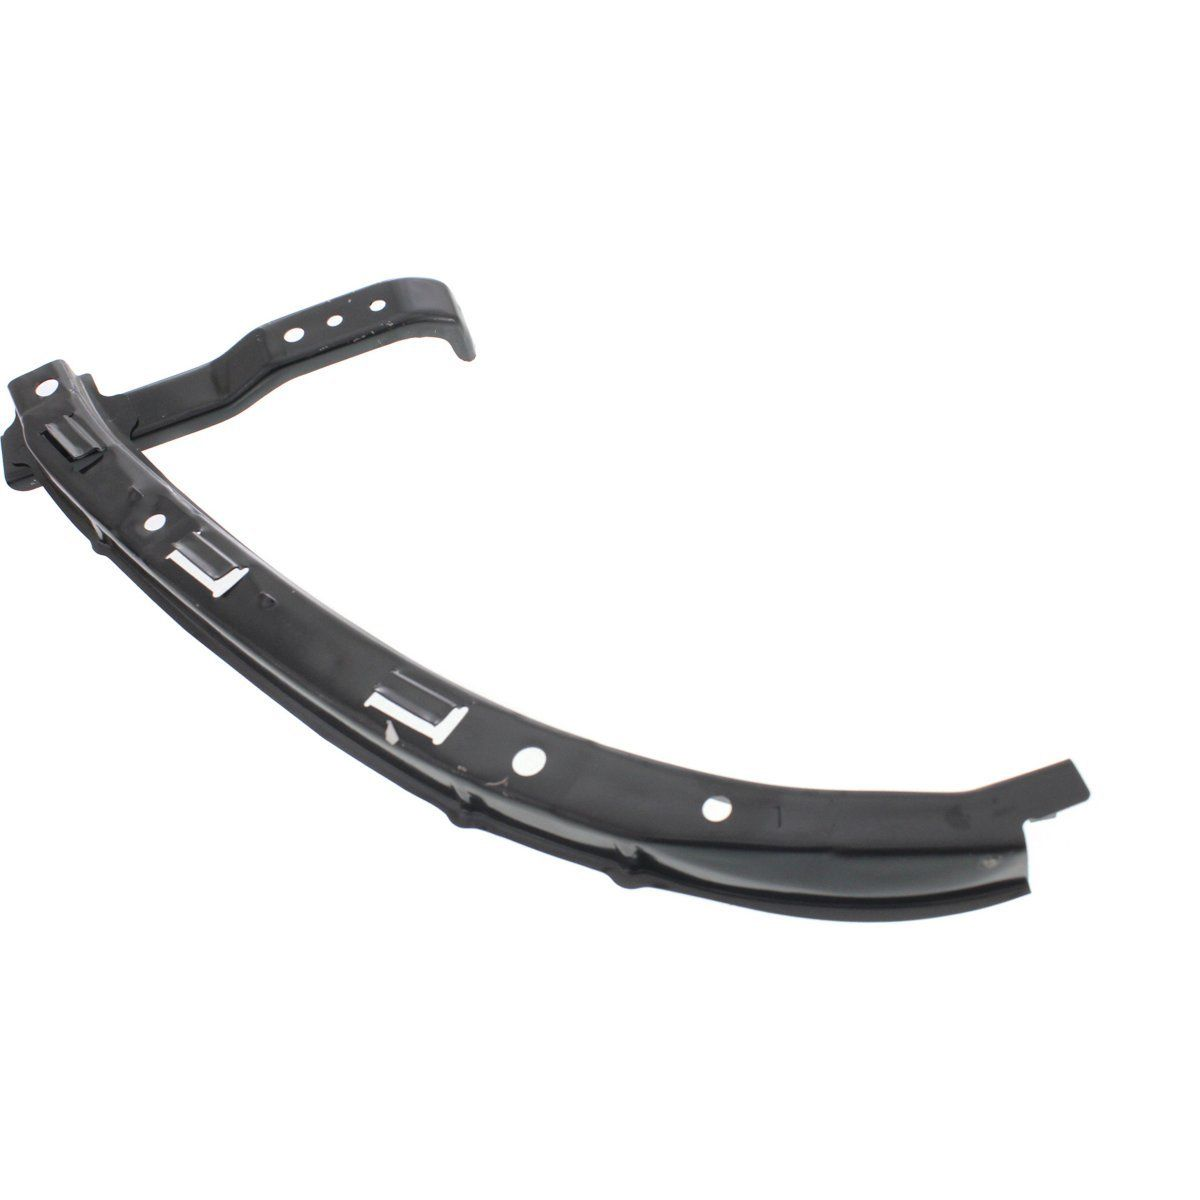 Bumper Bracket For 2005-2006 Acura RSX Front, Driver Side